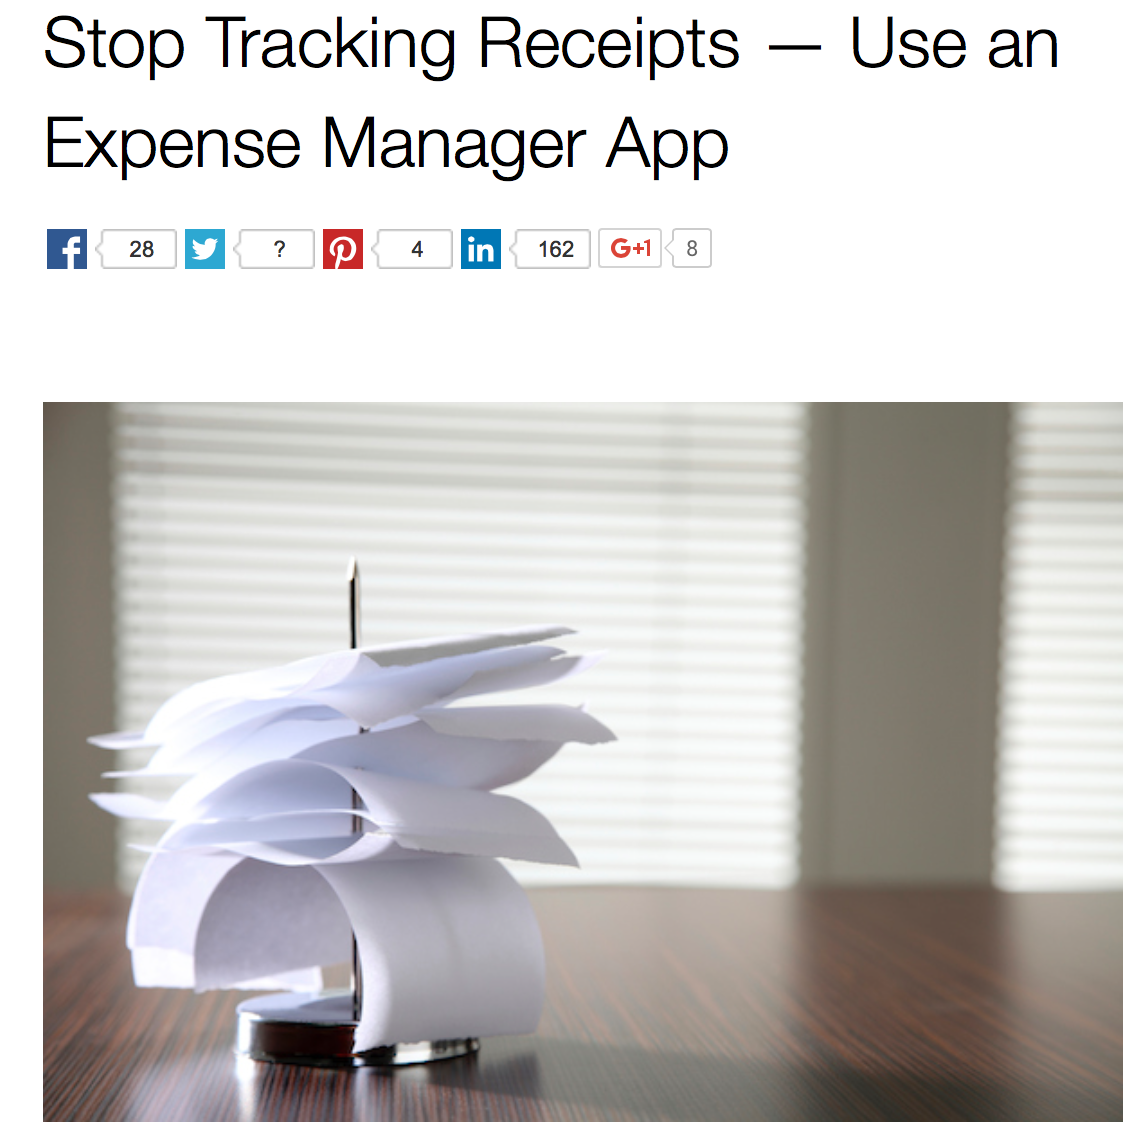 Stop Tracking Receipts — Use An Expense Manager App